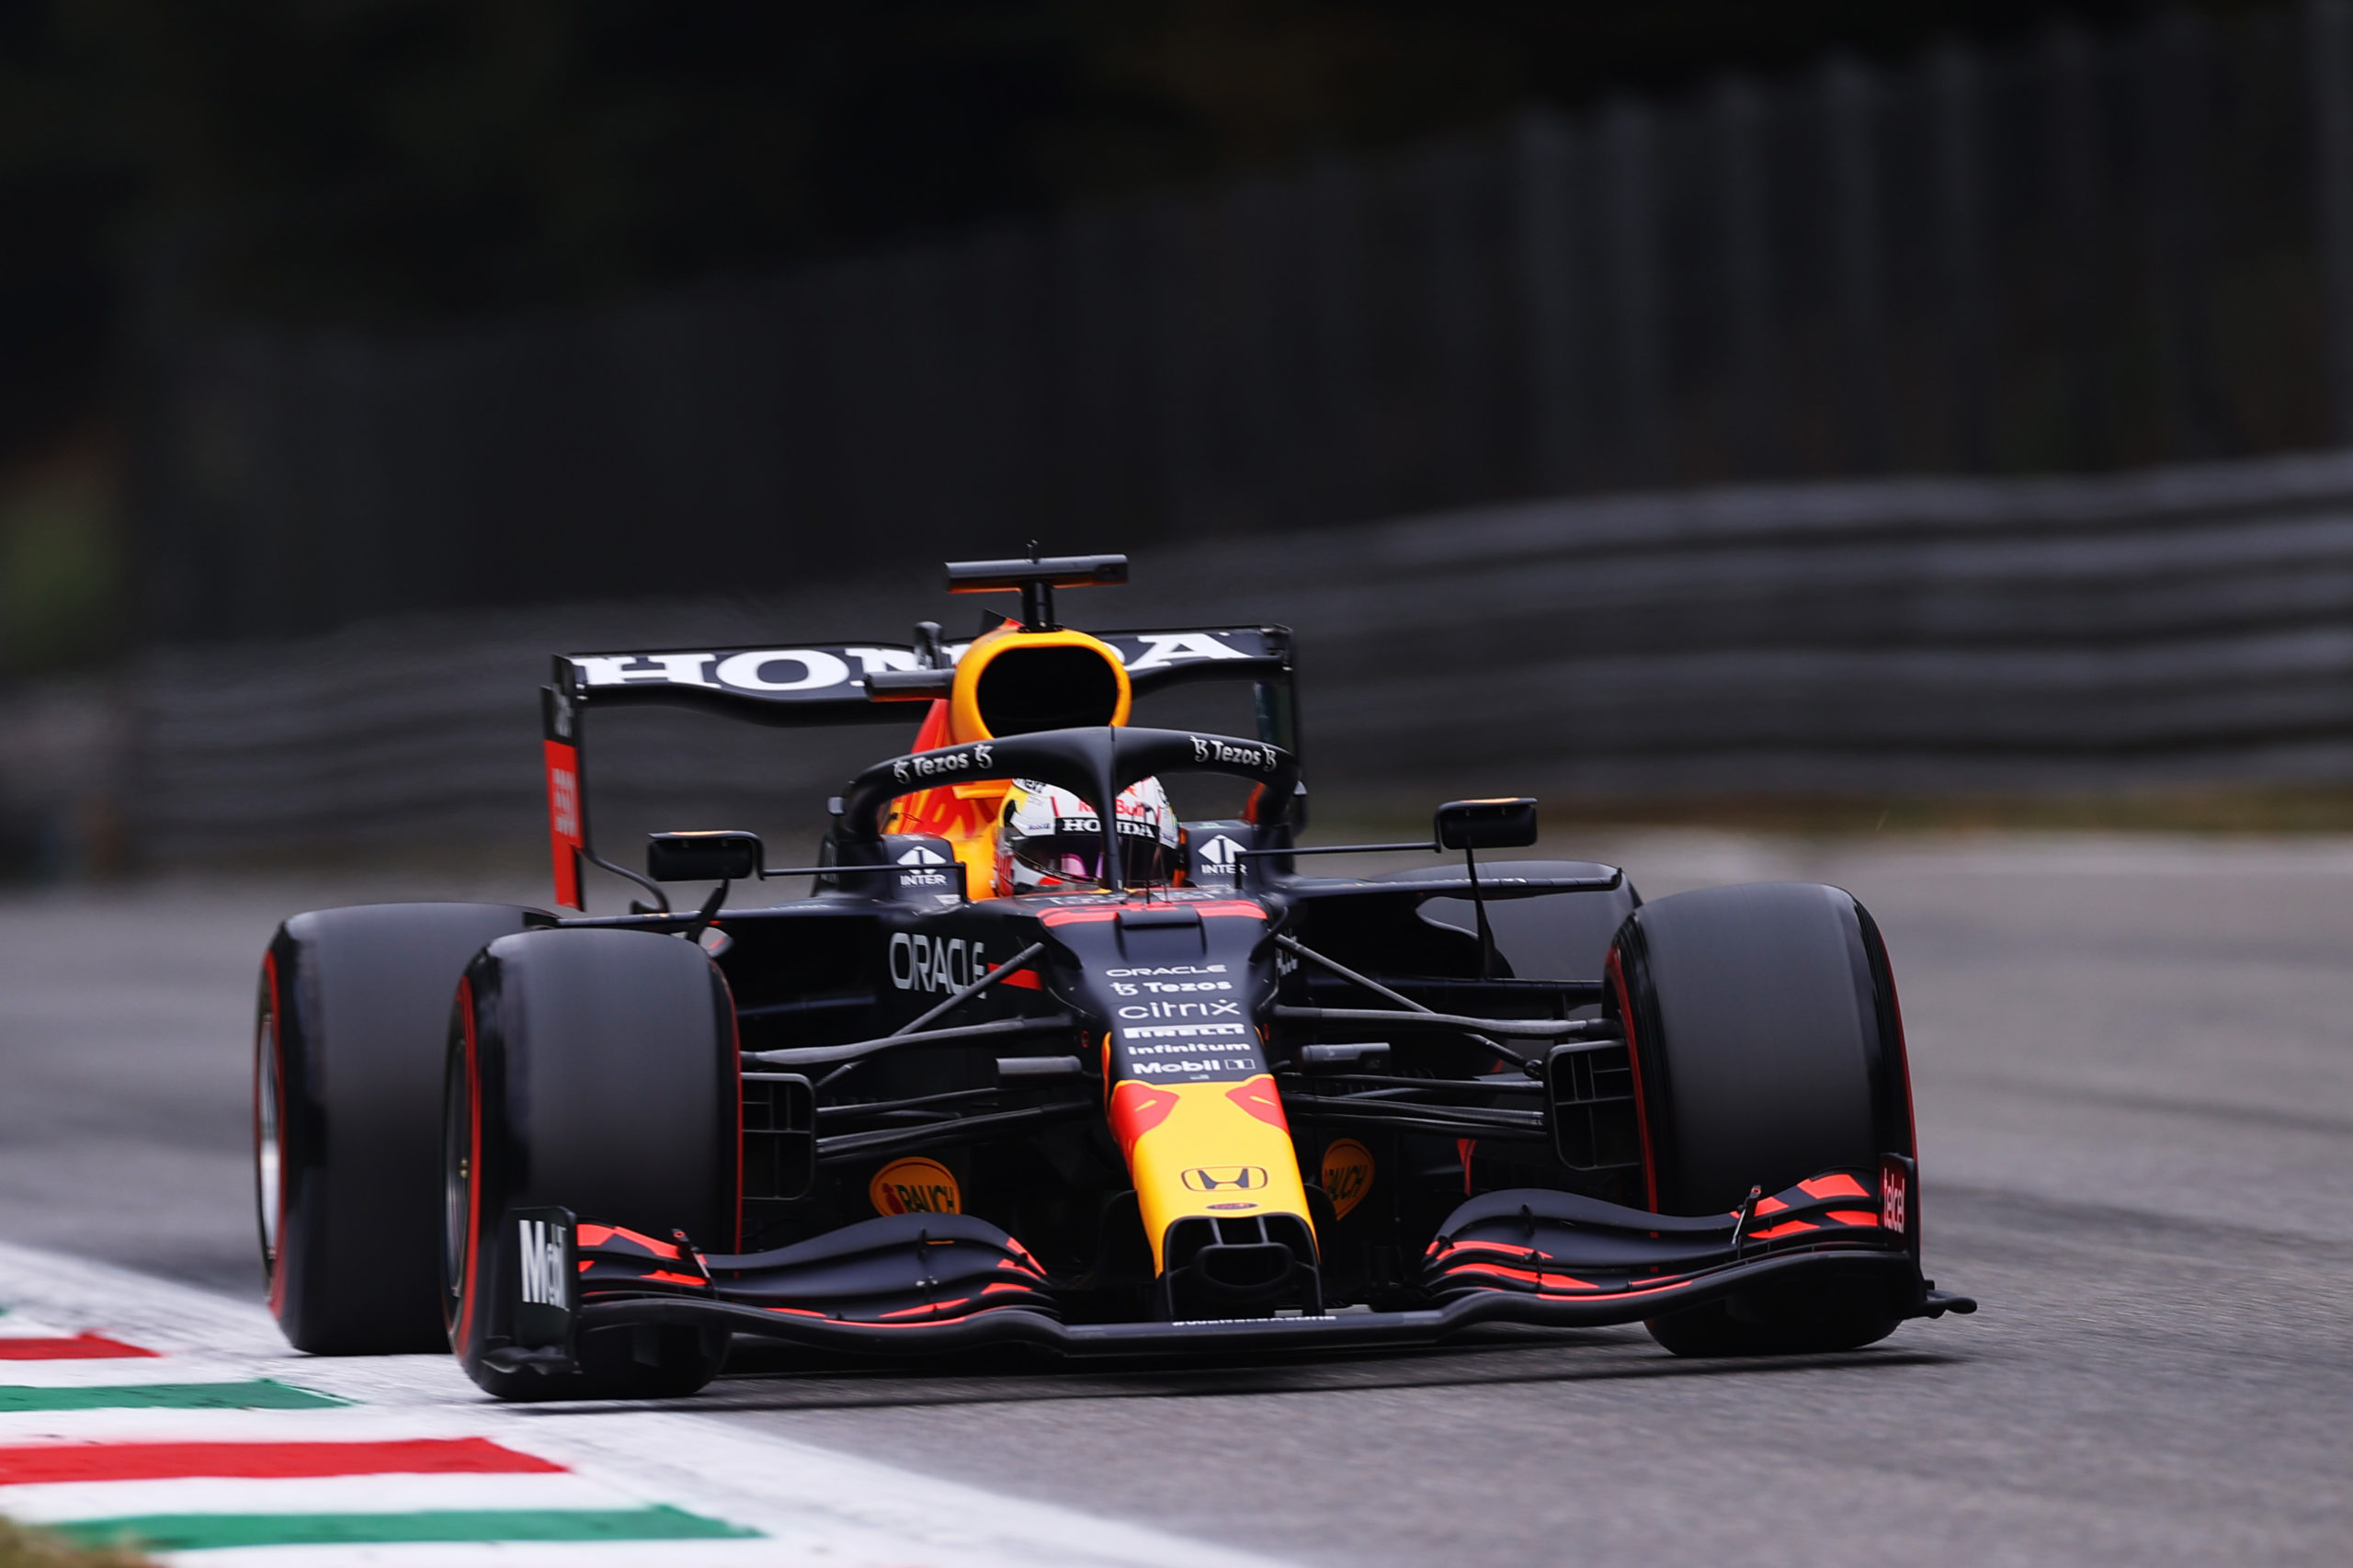 MONZA, ITALY - SEPTEMBER 10: Max Verstappen of the Netherlands driving the (33) Red Bull Racing RB16B Honda during qualifying ahead of the F1 Grand Prix of Italy at Autodromo di Monza on September 10, 2021 in Monza, Italy. (Photo by Lars Baron/Getty Images) // Getty Images / Red Bull Content Pool  // SI202109100500 // Usage for editorial use only //